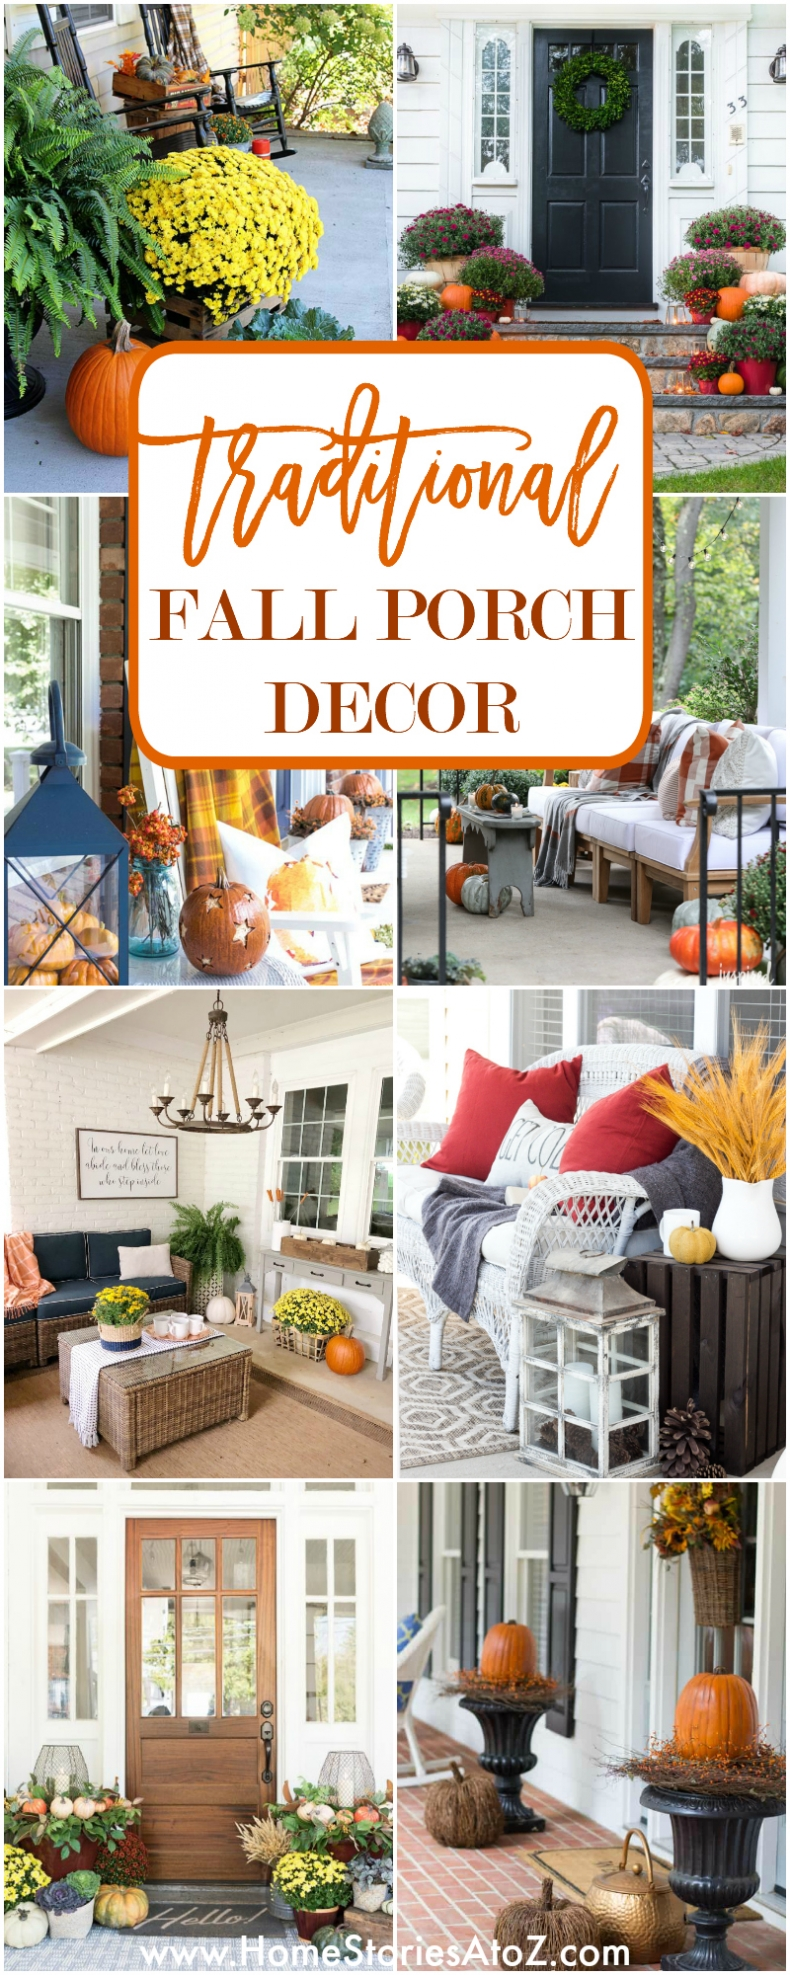 Traditional Fall Porch Decor Ideas - Home Stories A to Z